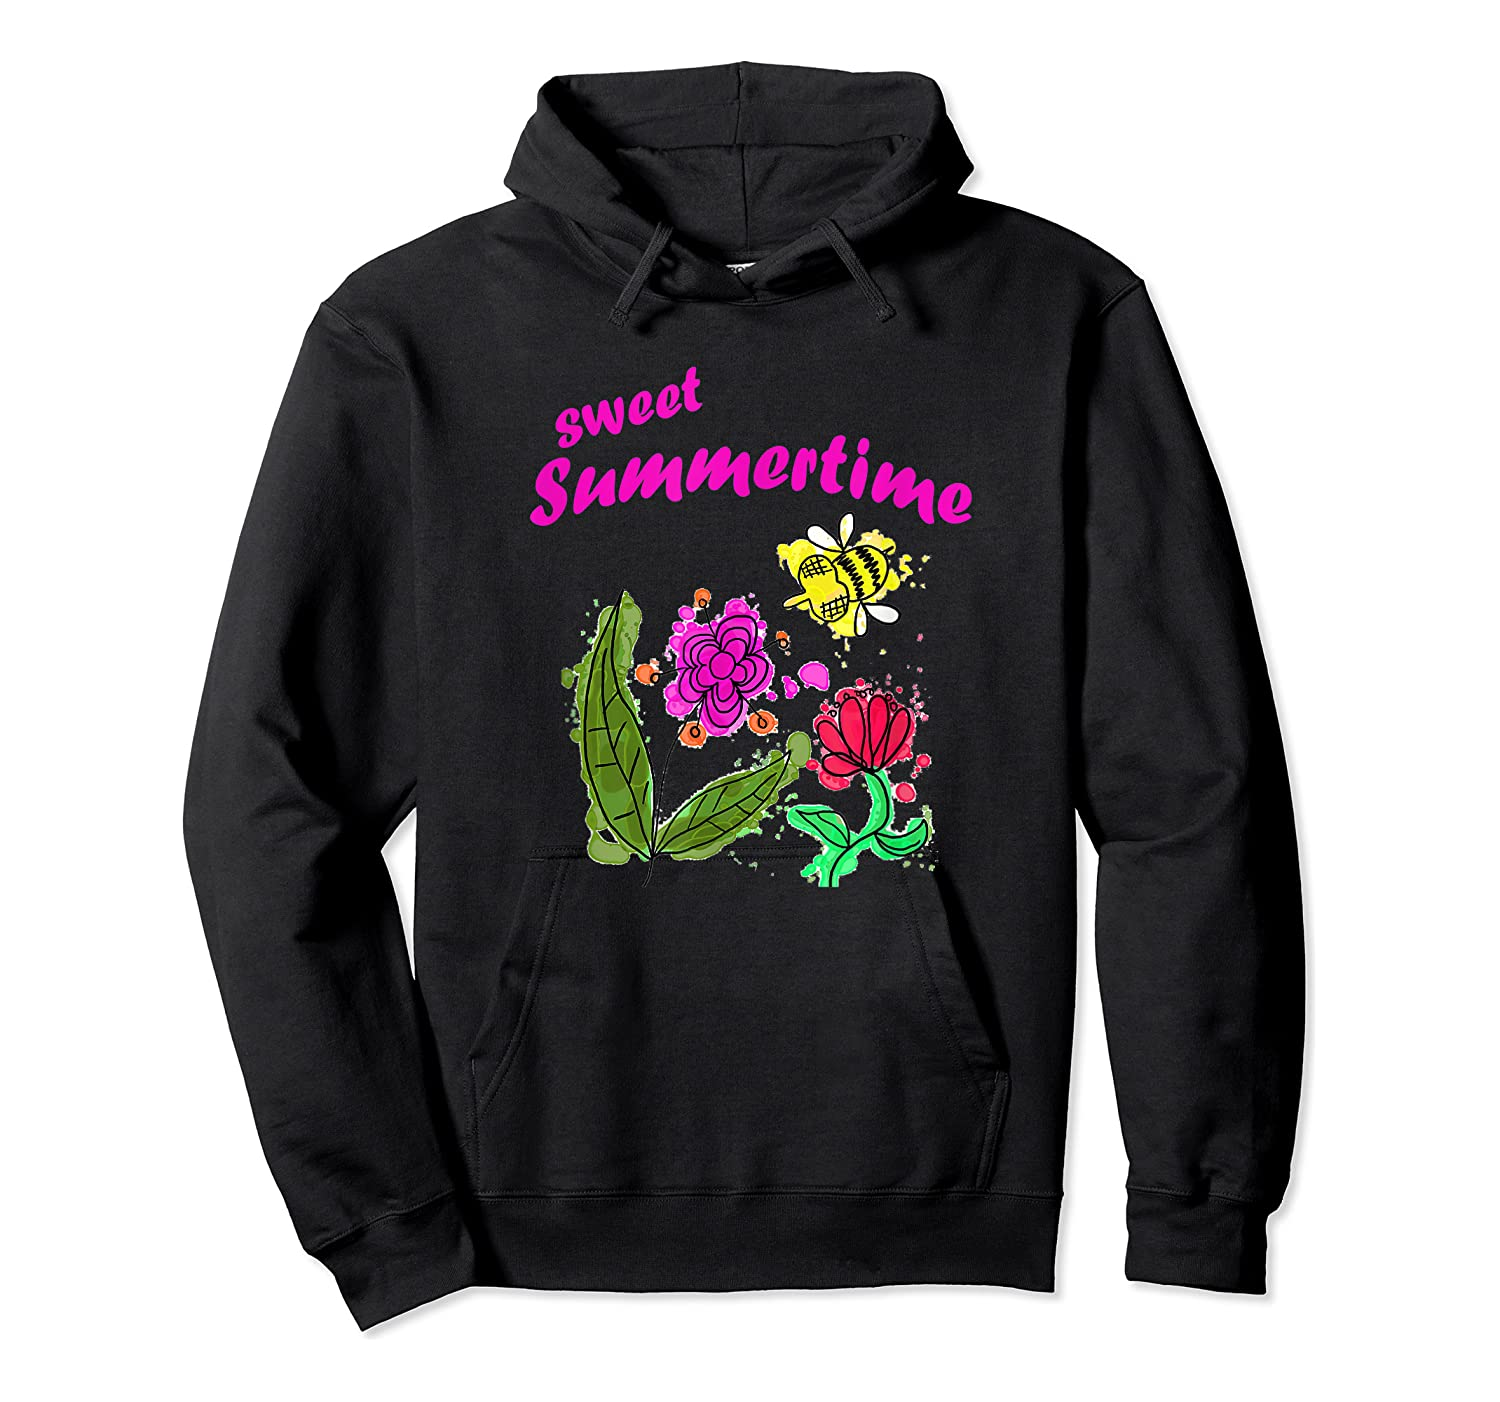 Sunshine, Flowers And Honey Bees Shirts Unisex Pullover Hoodie